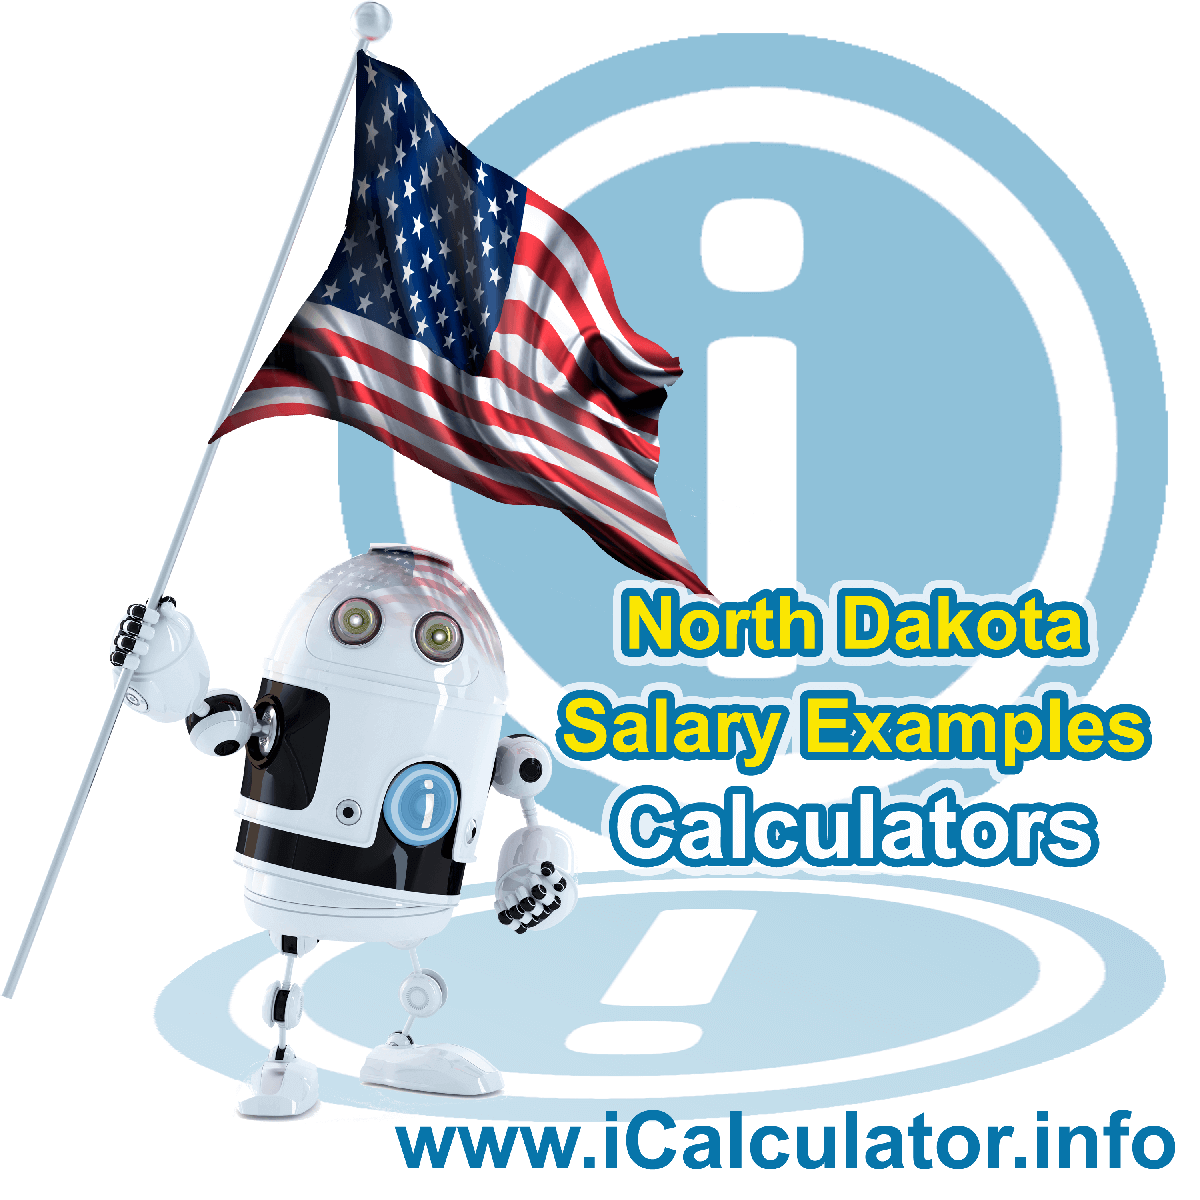 North Dakota Salary Example for $95,000.00 in 2020 | iCalculator | $95,000.00 salary example for employee and employer paying North Dakota State tincome taxes. Detailed salary after tax calculation including North Dakota State Tax, Federal State Tax, Medicare Deductions, Social Security, Capital Gains and other income tax and salary deductions complete with supporting North Dakota state tax tables